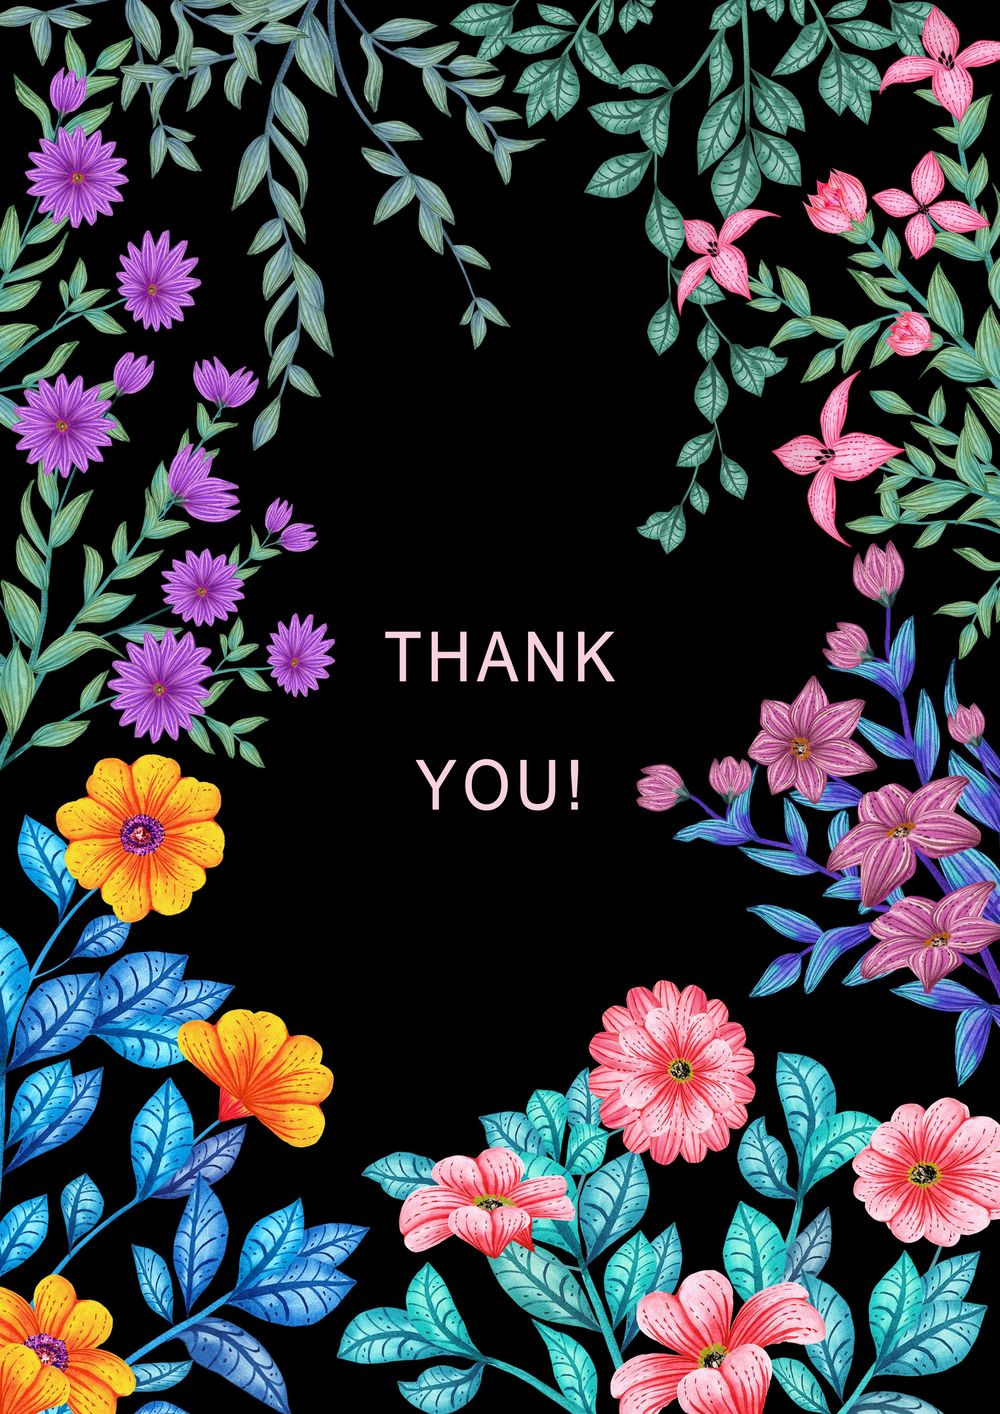 Thank You - image 2 - student project